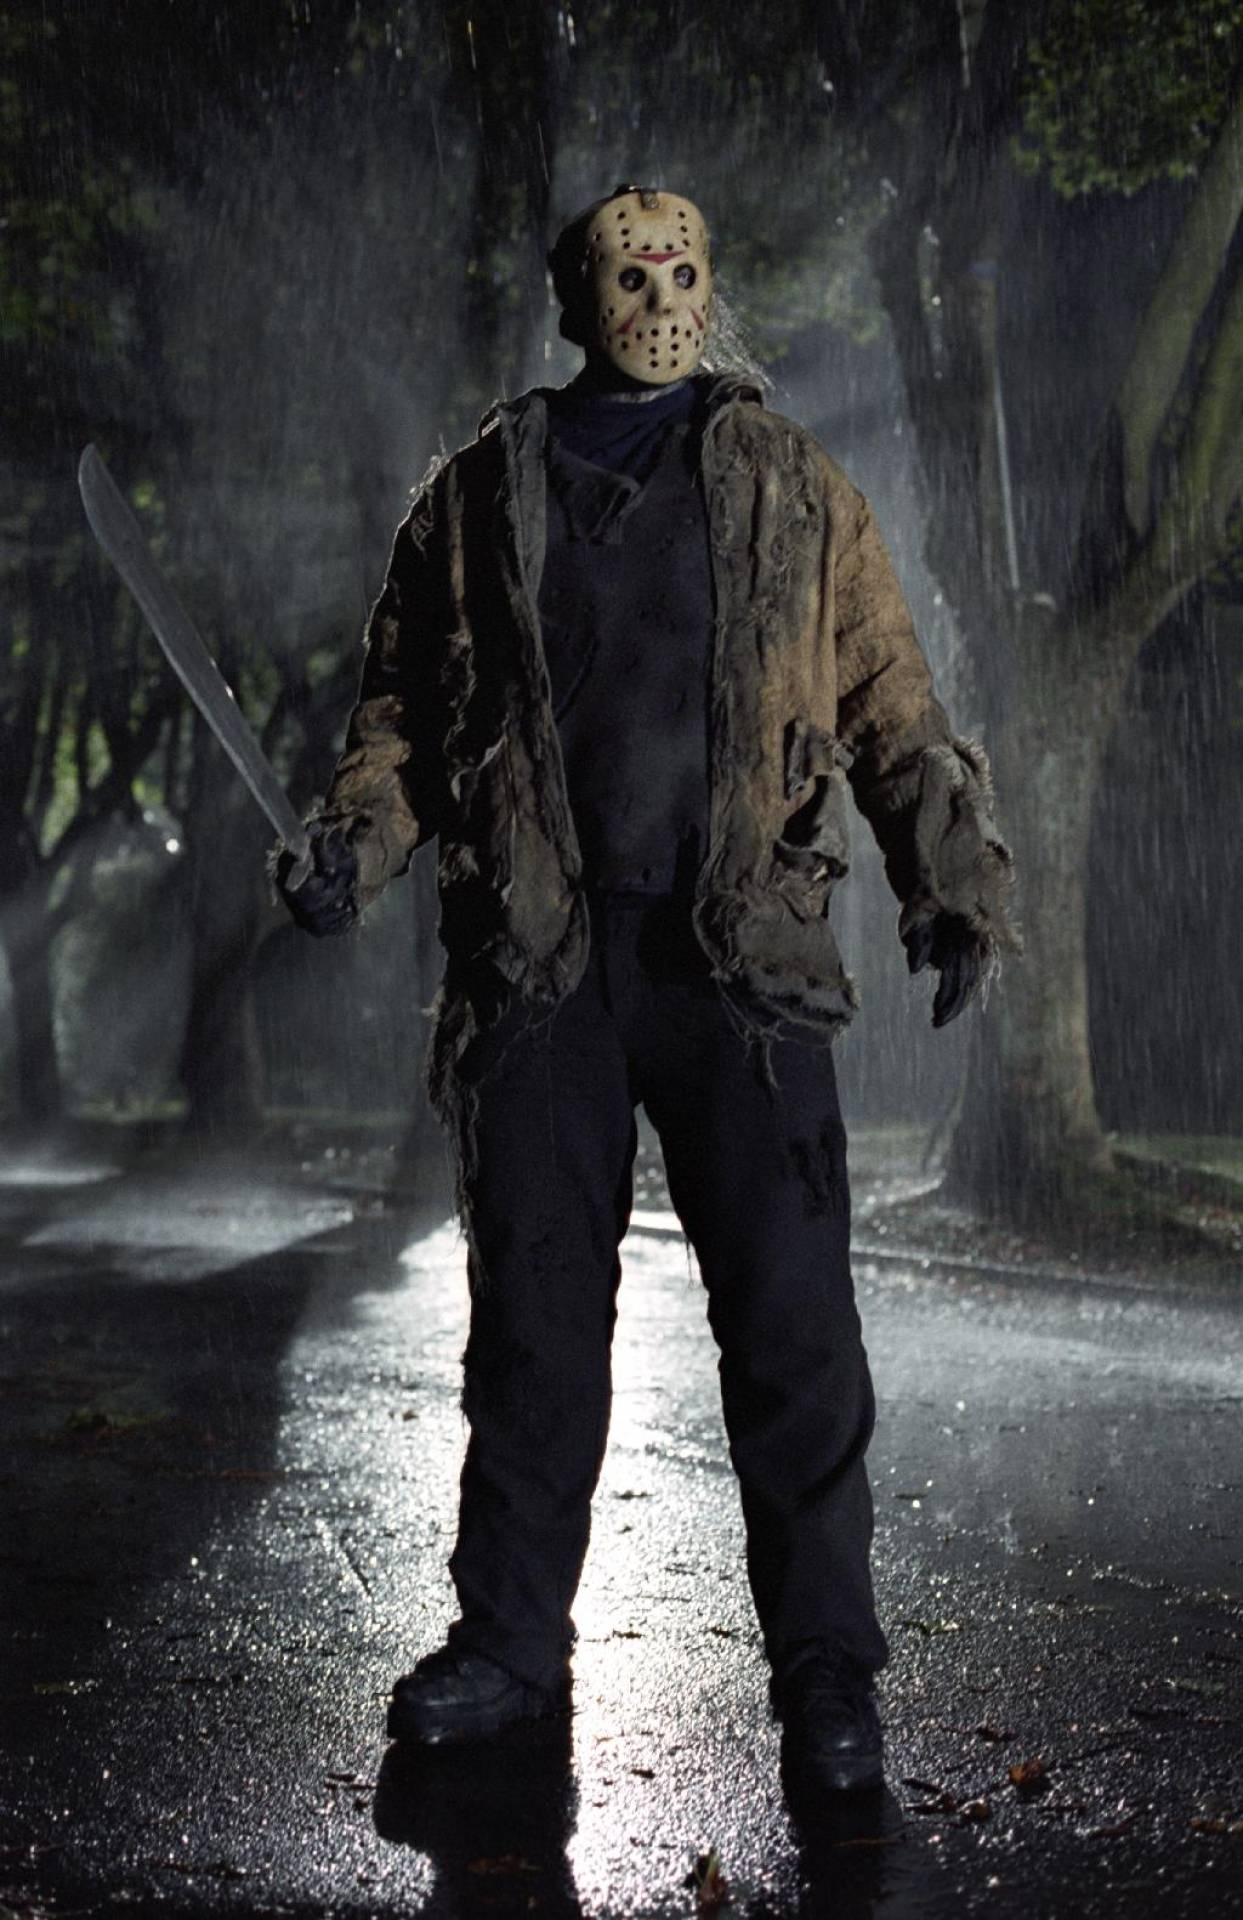 Ken Kirzinger as Jason Voorhees, A man wearing a hockey goalie mask and holding a machete stands in a road at night. The scene is back-lit.